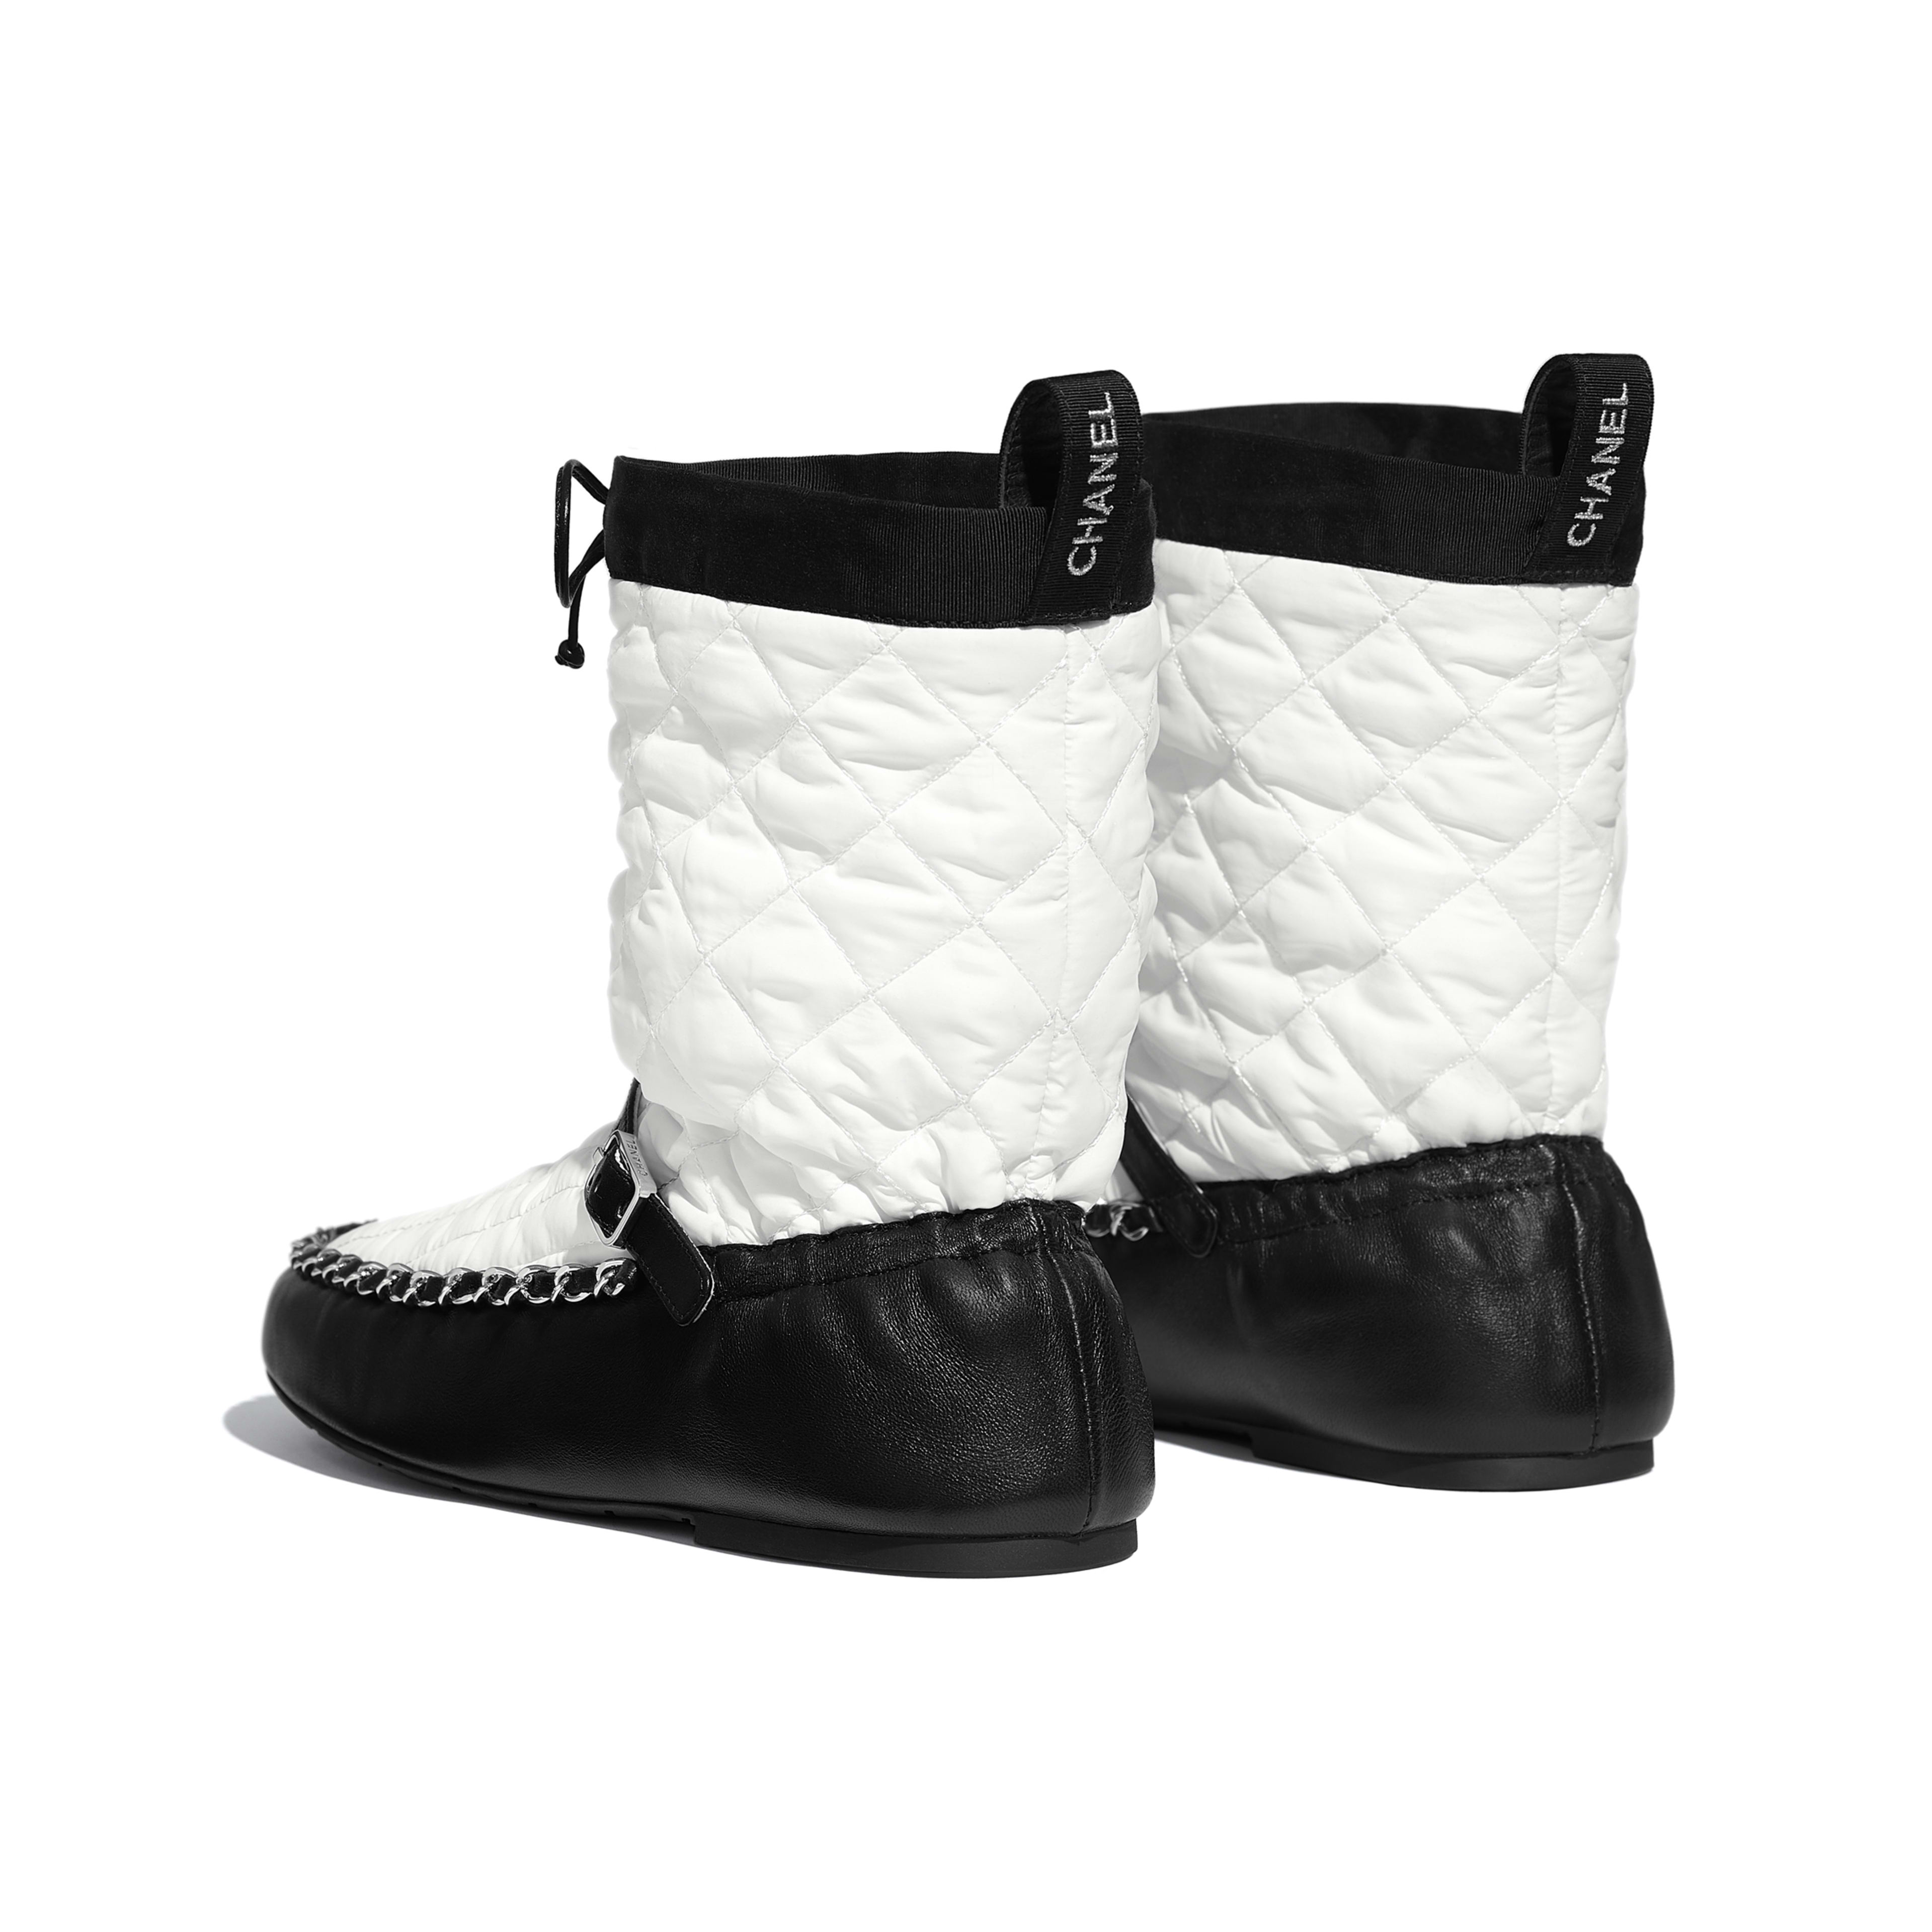 Ankle Boots - White & Black - Fabric & Lambskin - Other view - see full sized version